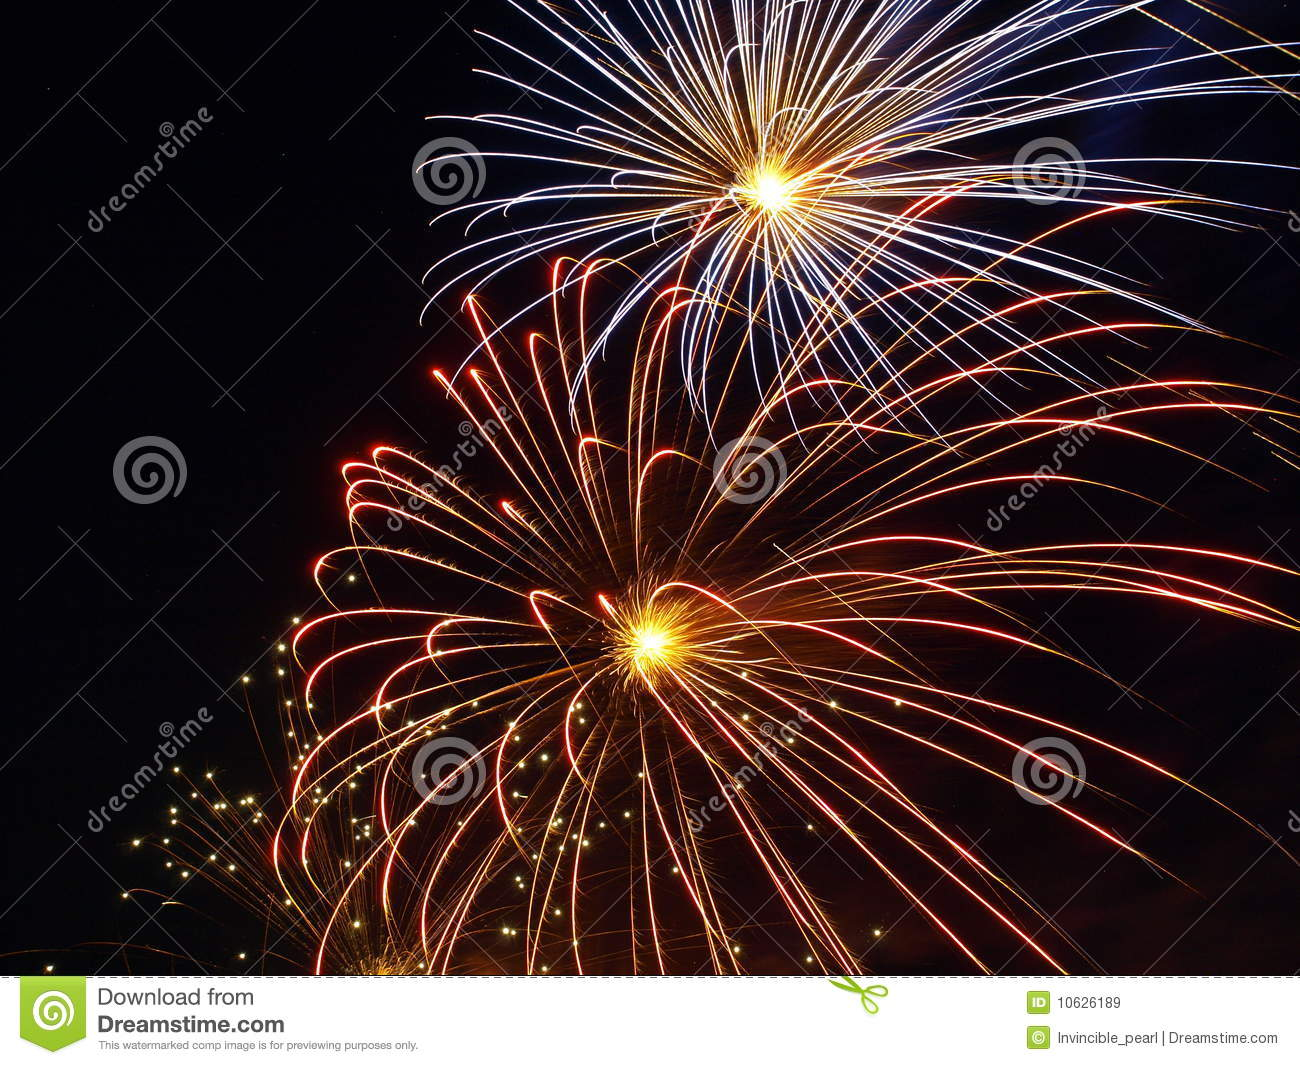 Fireworks Royalty Free Stock Images - Image: 10626189: dreamstime.com/royalty-free-stock-images-fireworks-image10626189